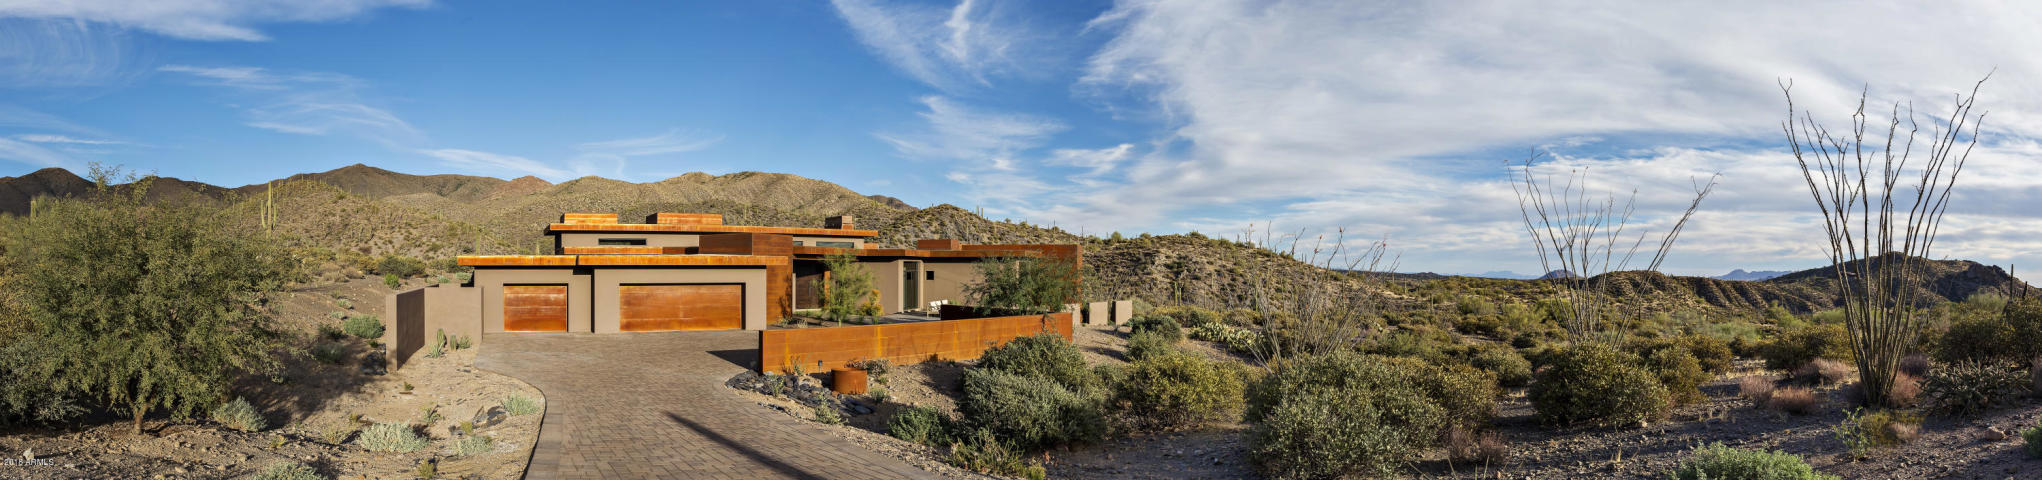 Your Guide To The Finest Luxury Arizona Homes (Architecture)